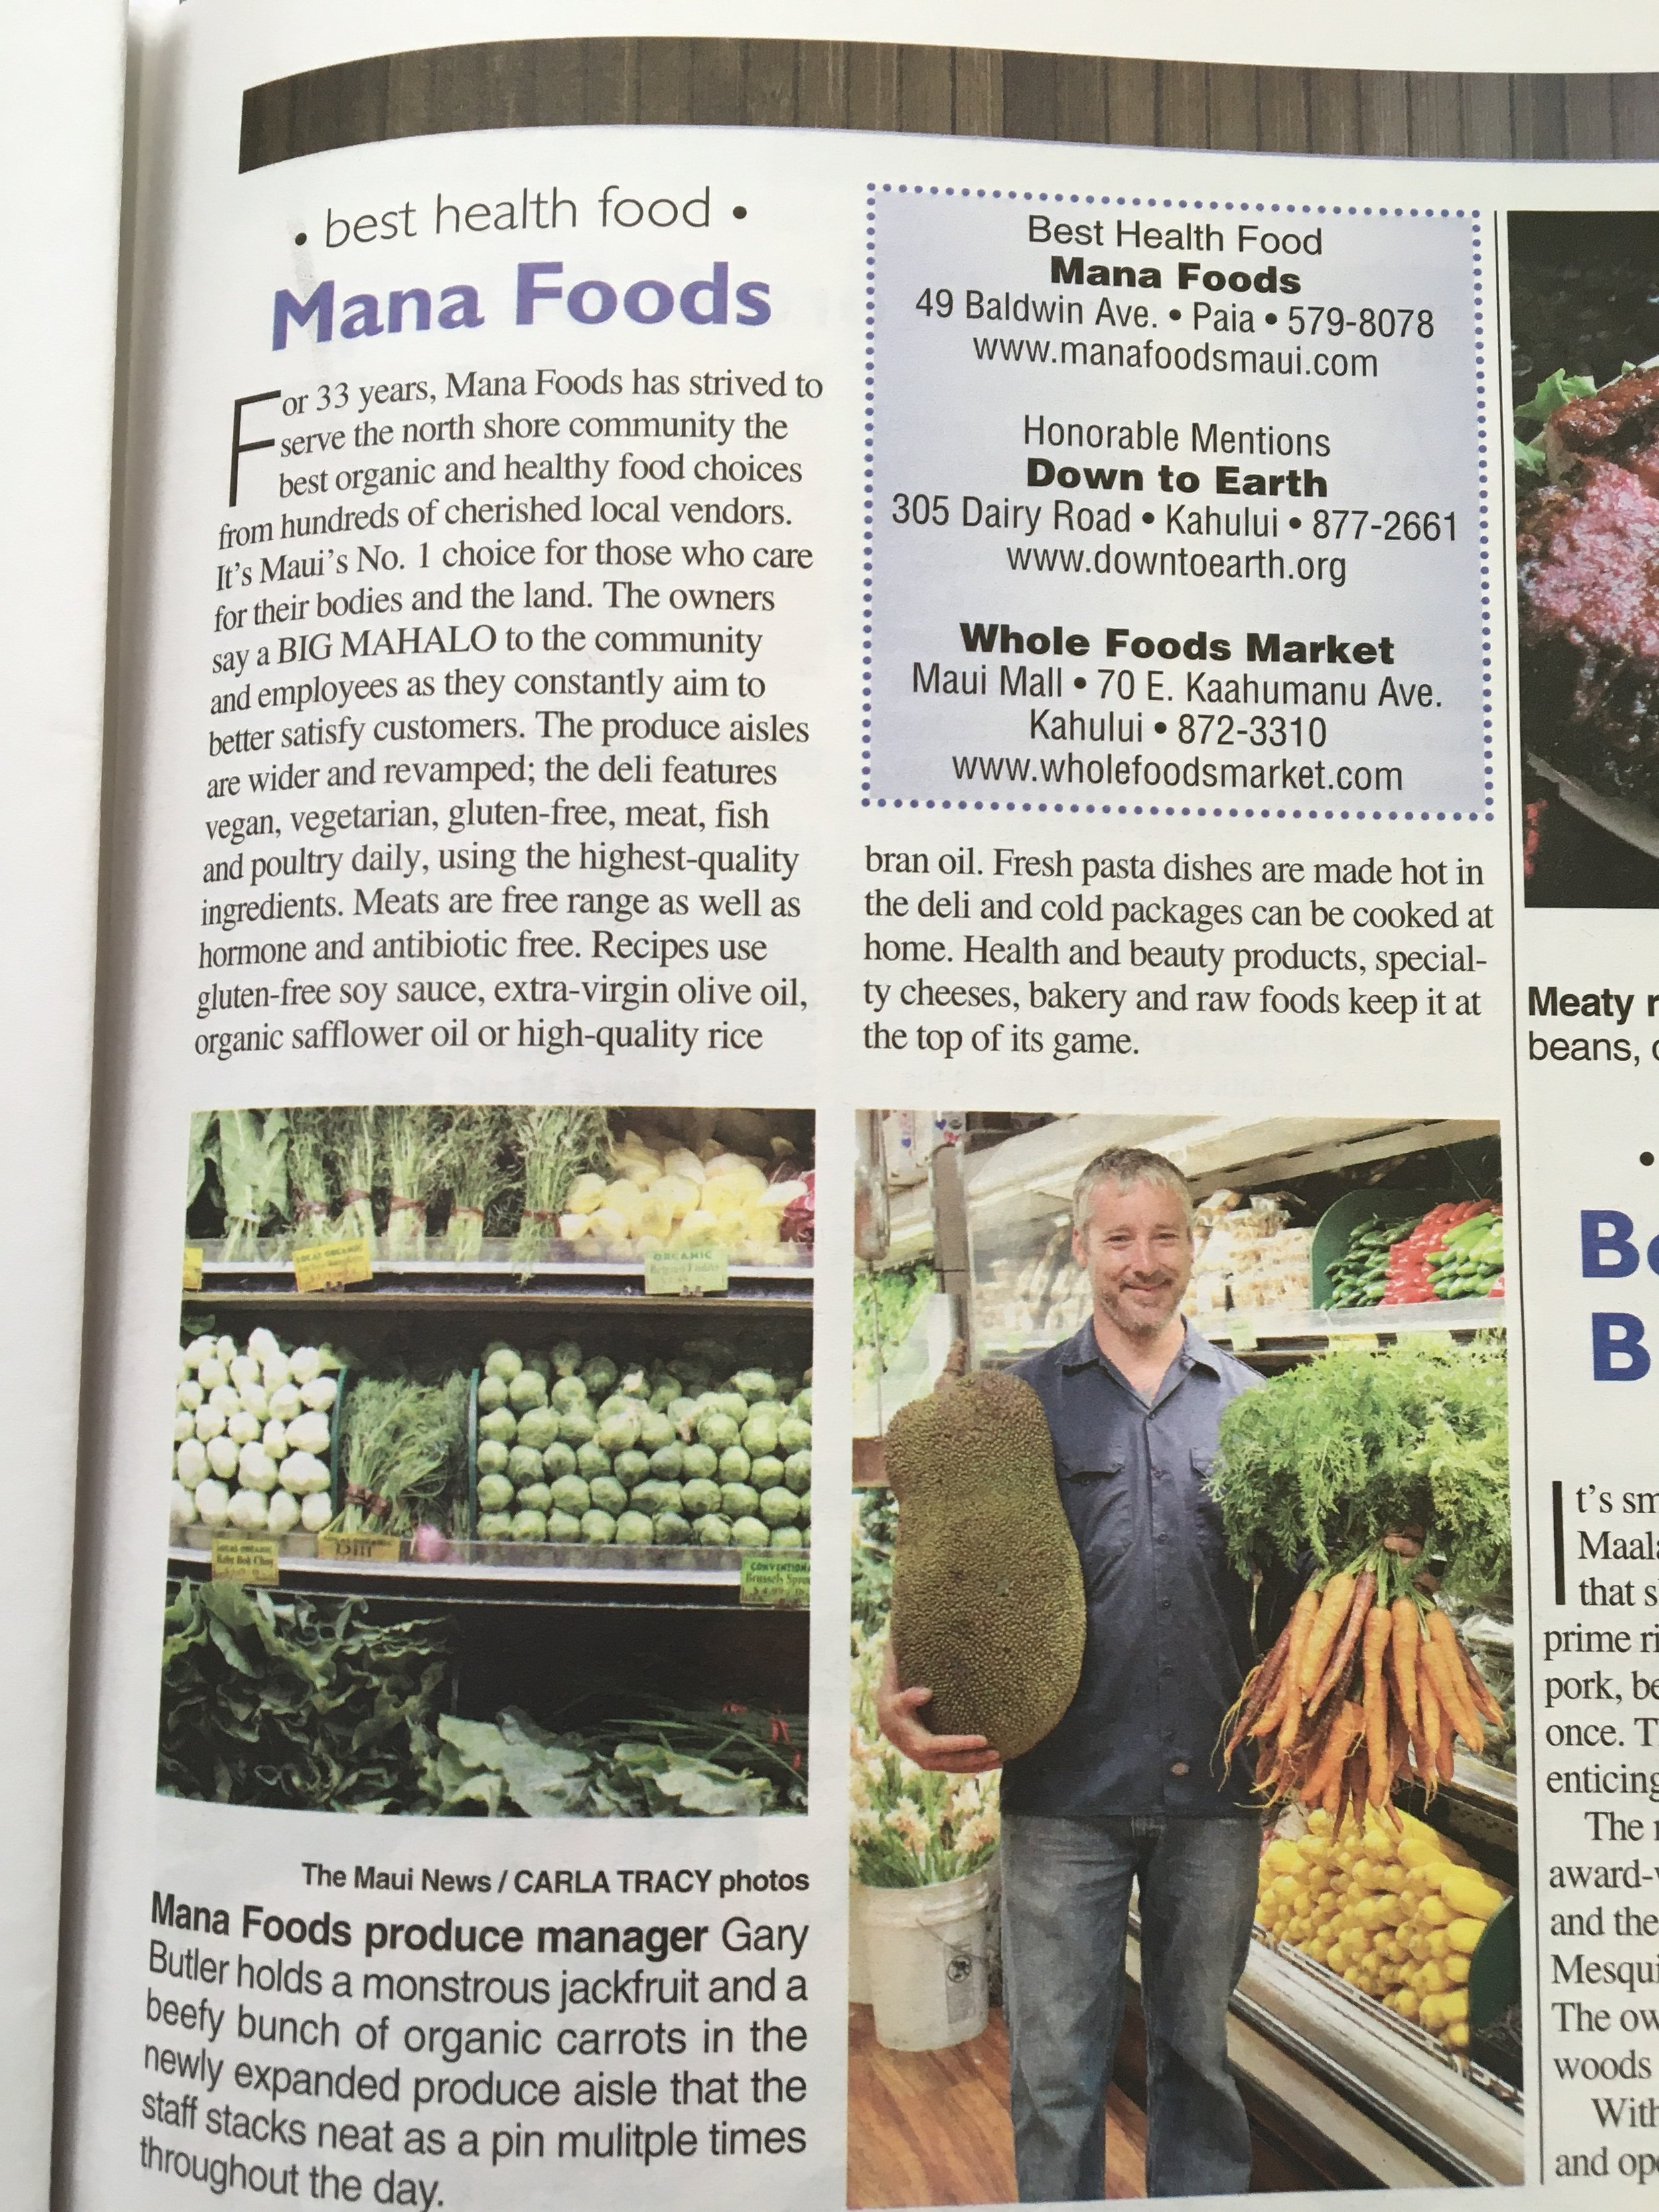 mana-foods-voted-best-health-food-store-maui